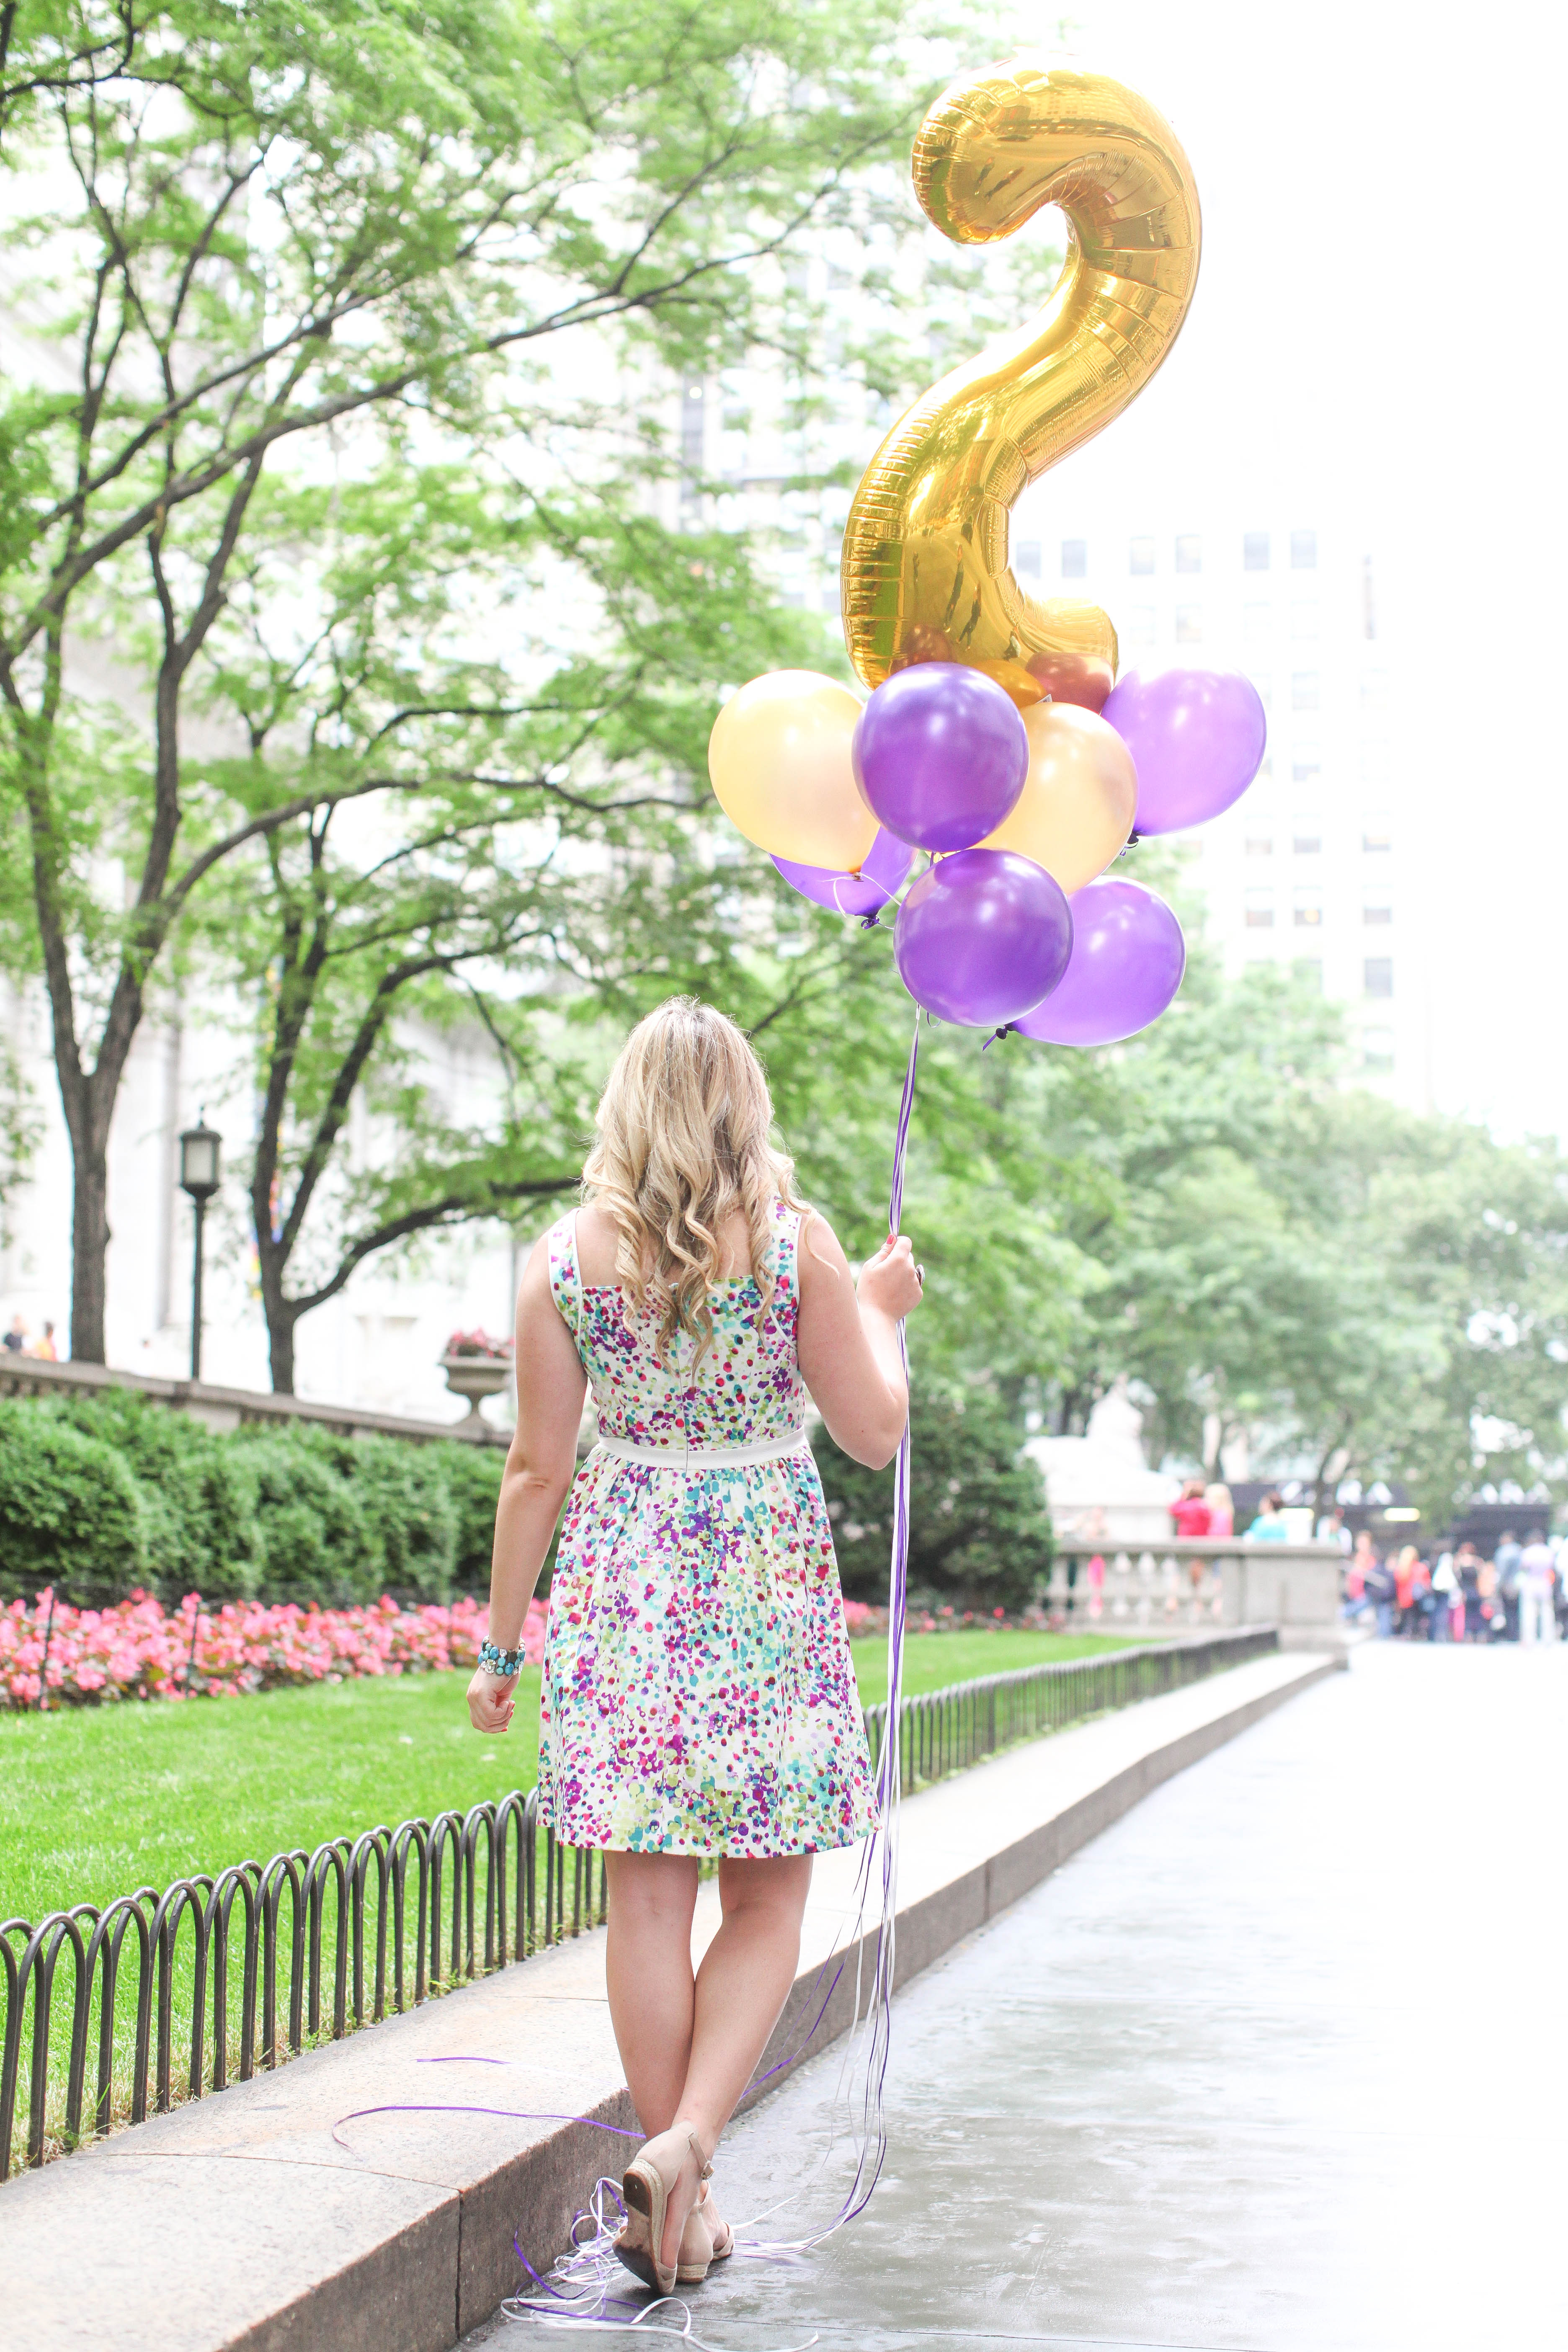 Watercolor Dress Girl With Balloons Bryant Park Nyc